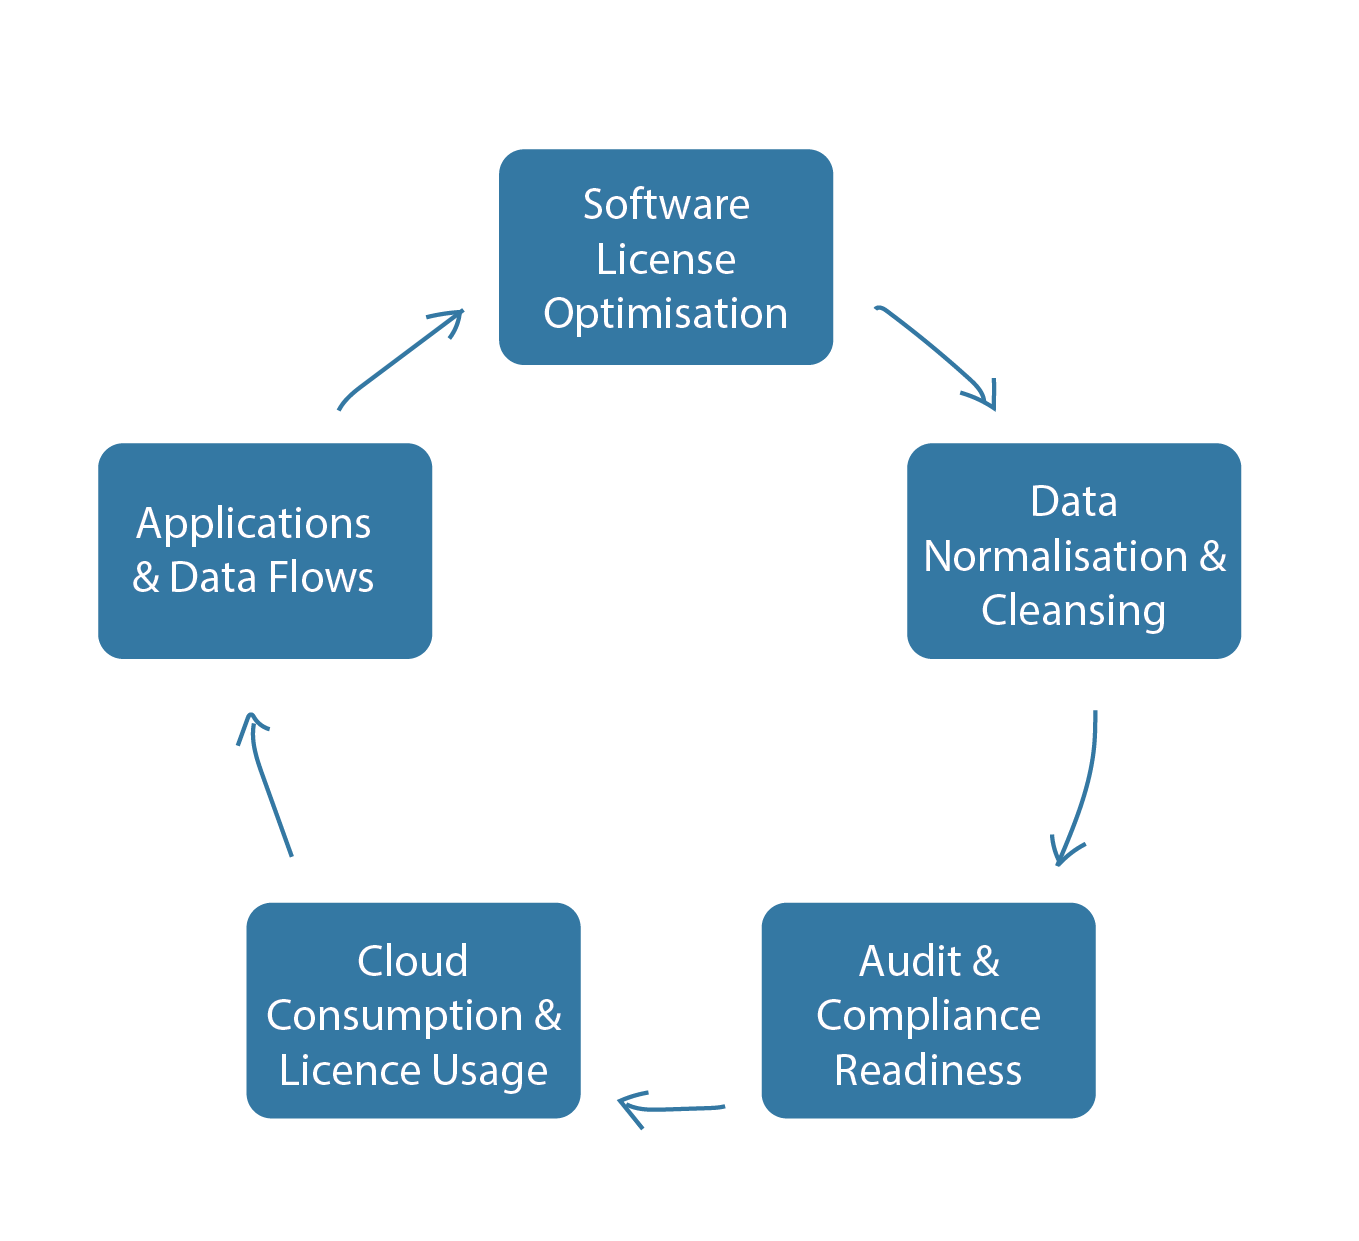 Automated toolsets and Consulting expertise as a service - We use IT Asset Management software to ascertain the baseline actuals. We then use this data to drive the following reporting:- Software Licence Optimisation- Data Normalisation & Cleansing- Audit & Compliance readiness- Cloud Consumption & Licence usage- Applications & Data Flows